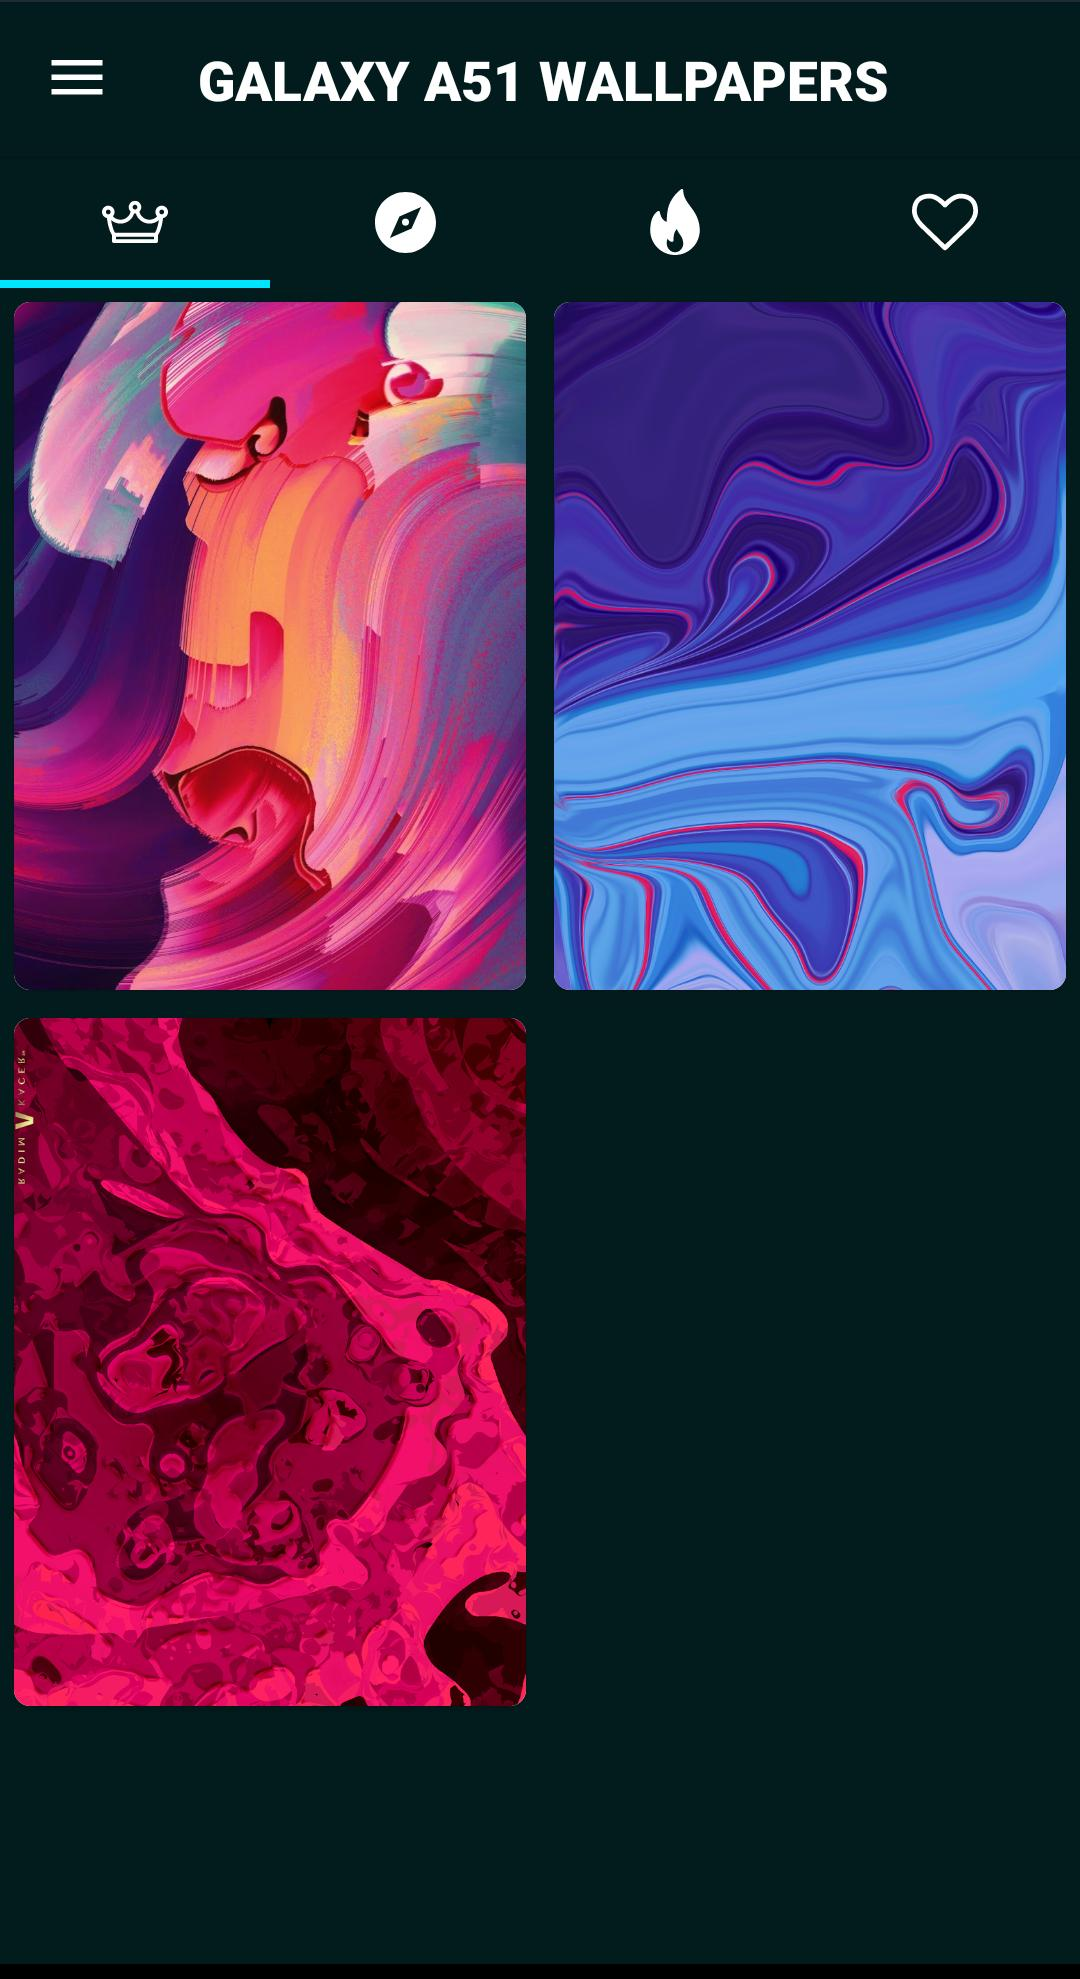 Galaxy A51 Wallpapers For Android Apk Download